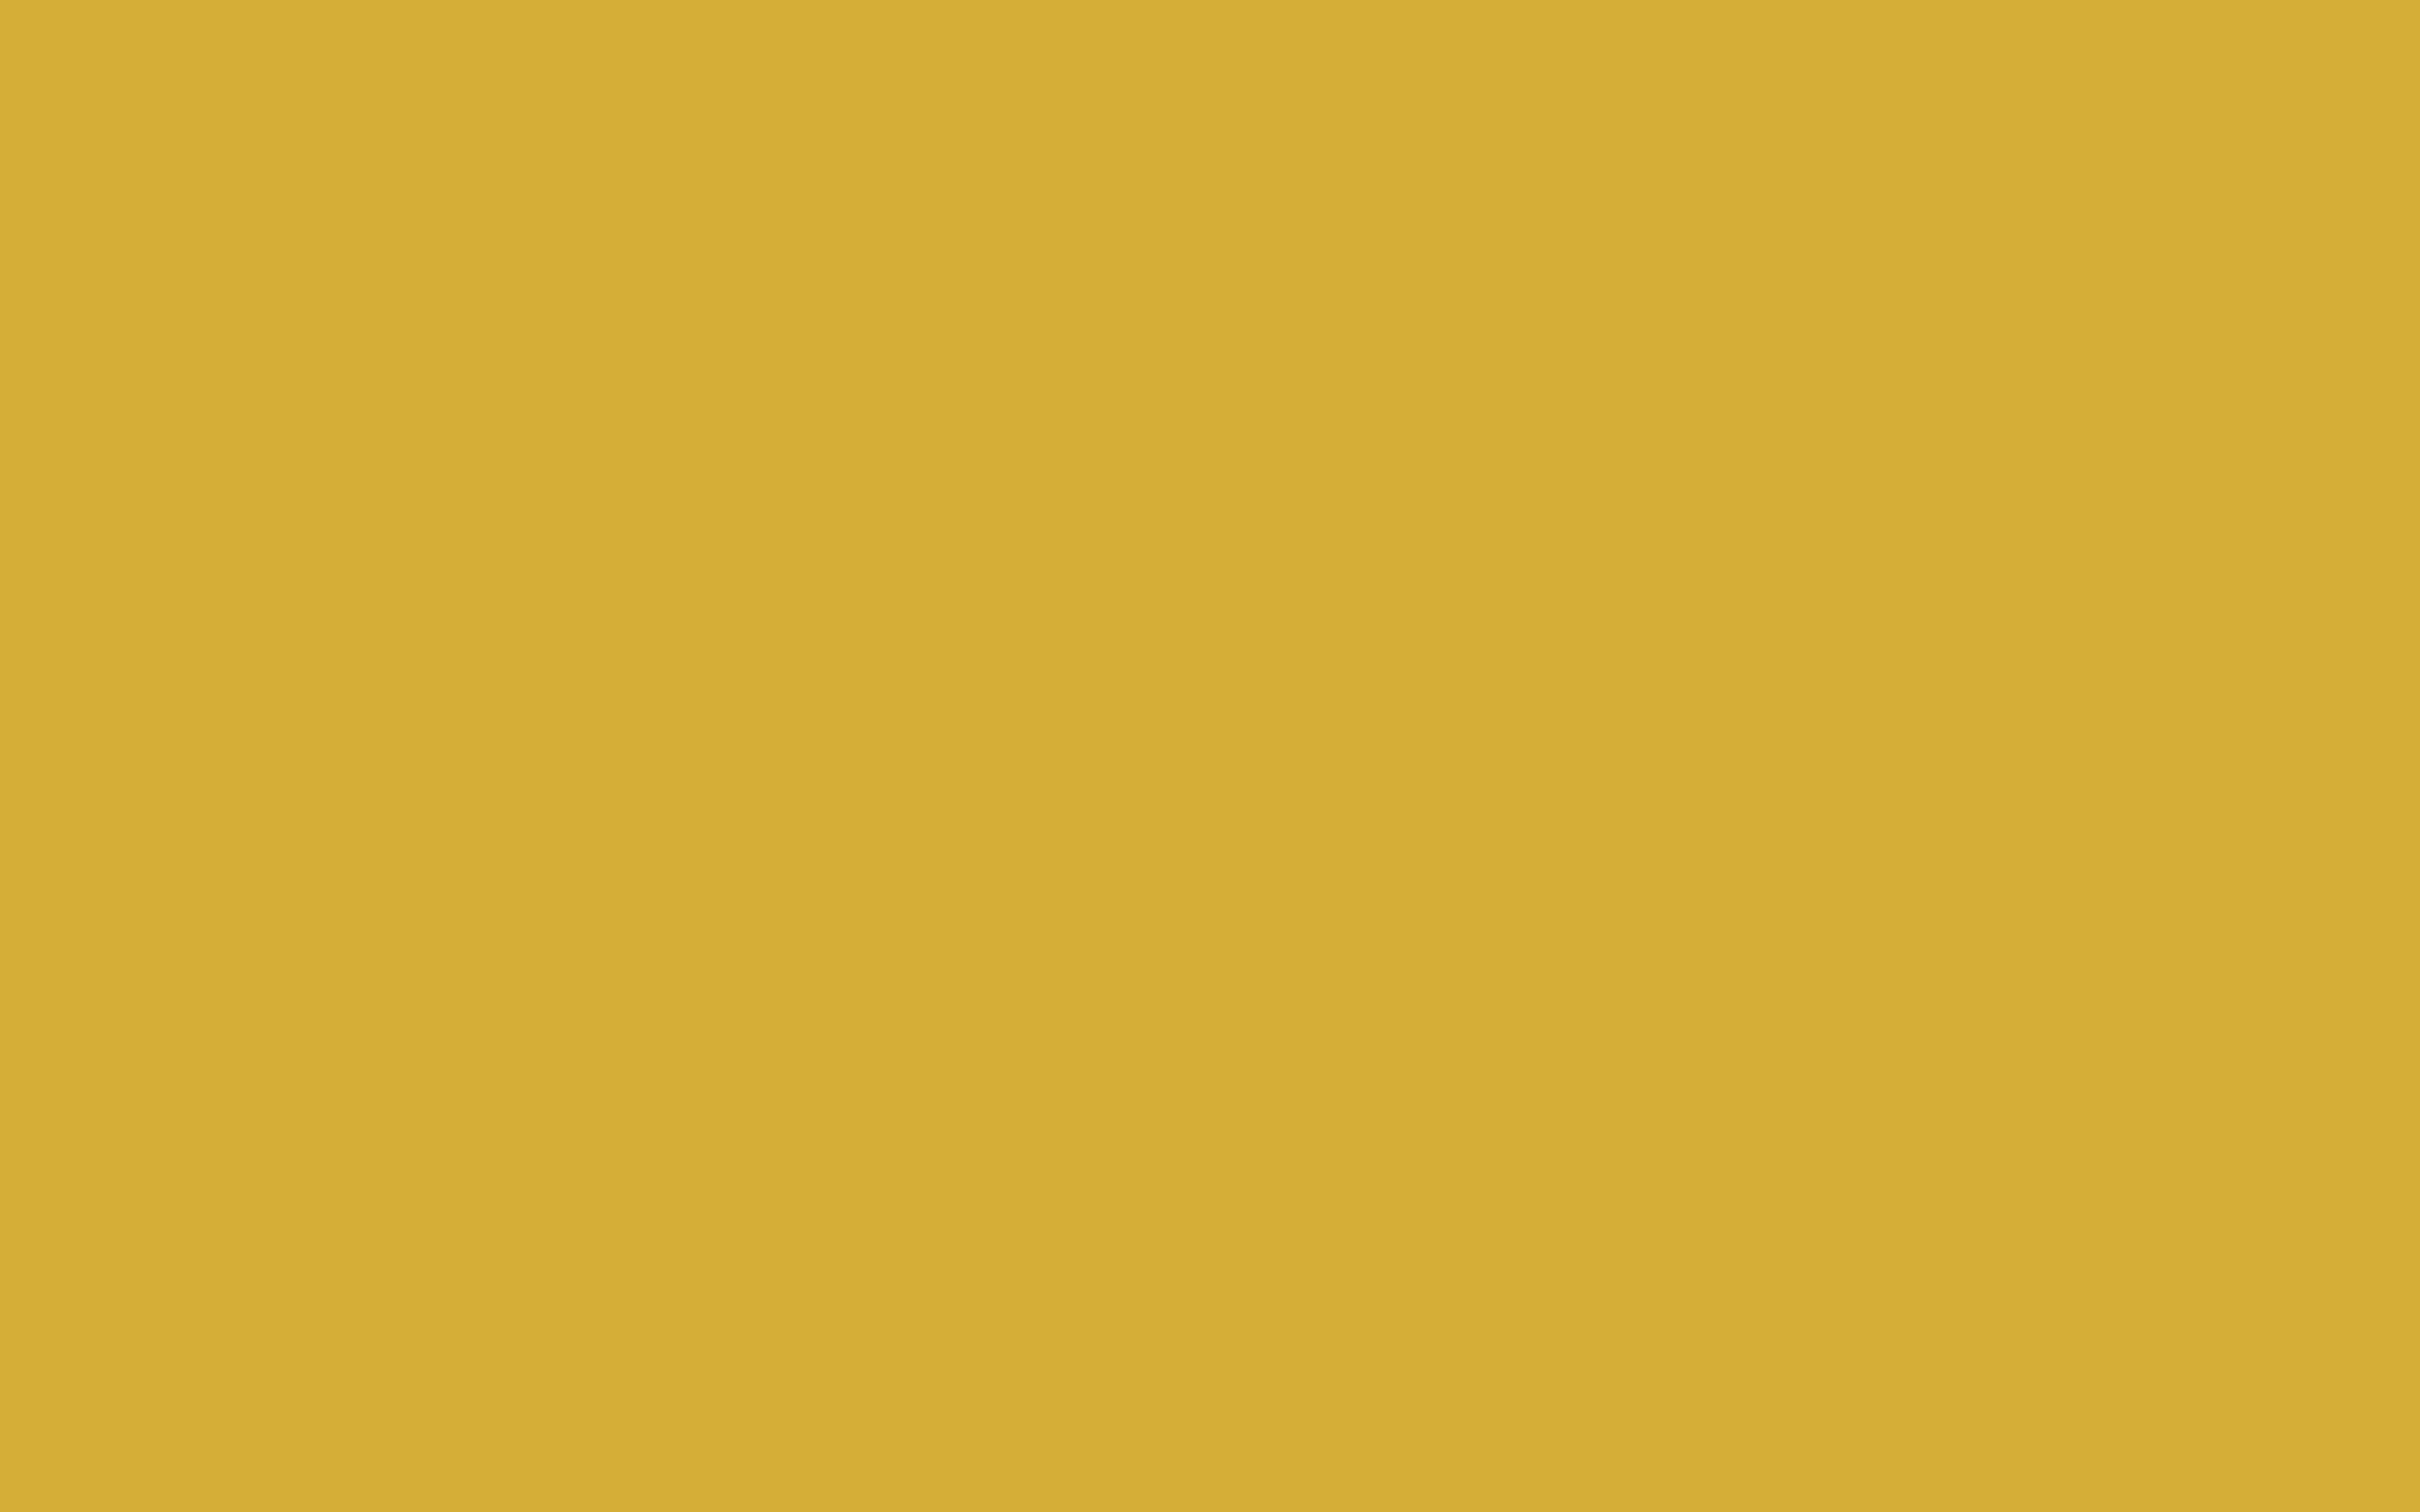 2880x1800 Gold Metallic Solid Color Background